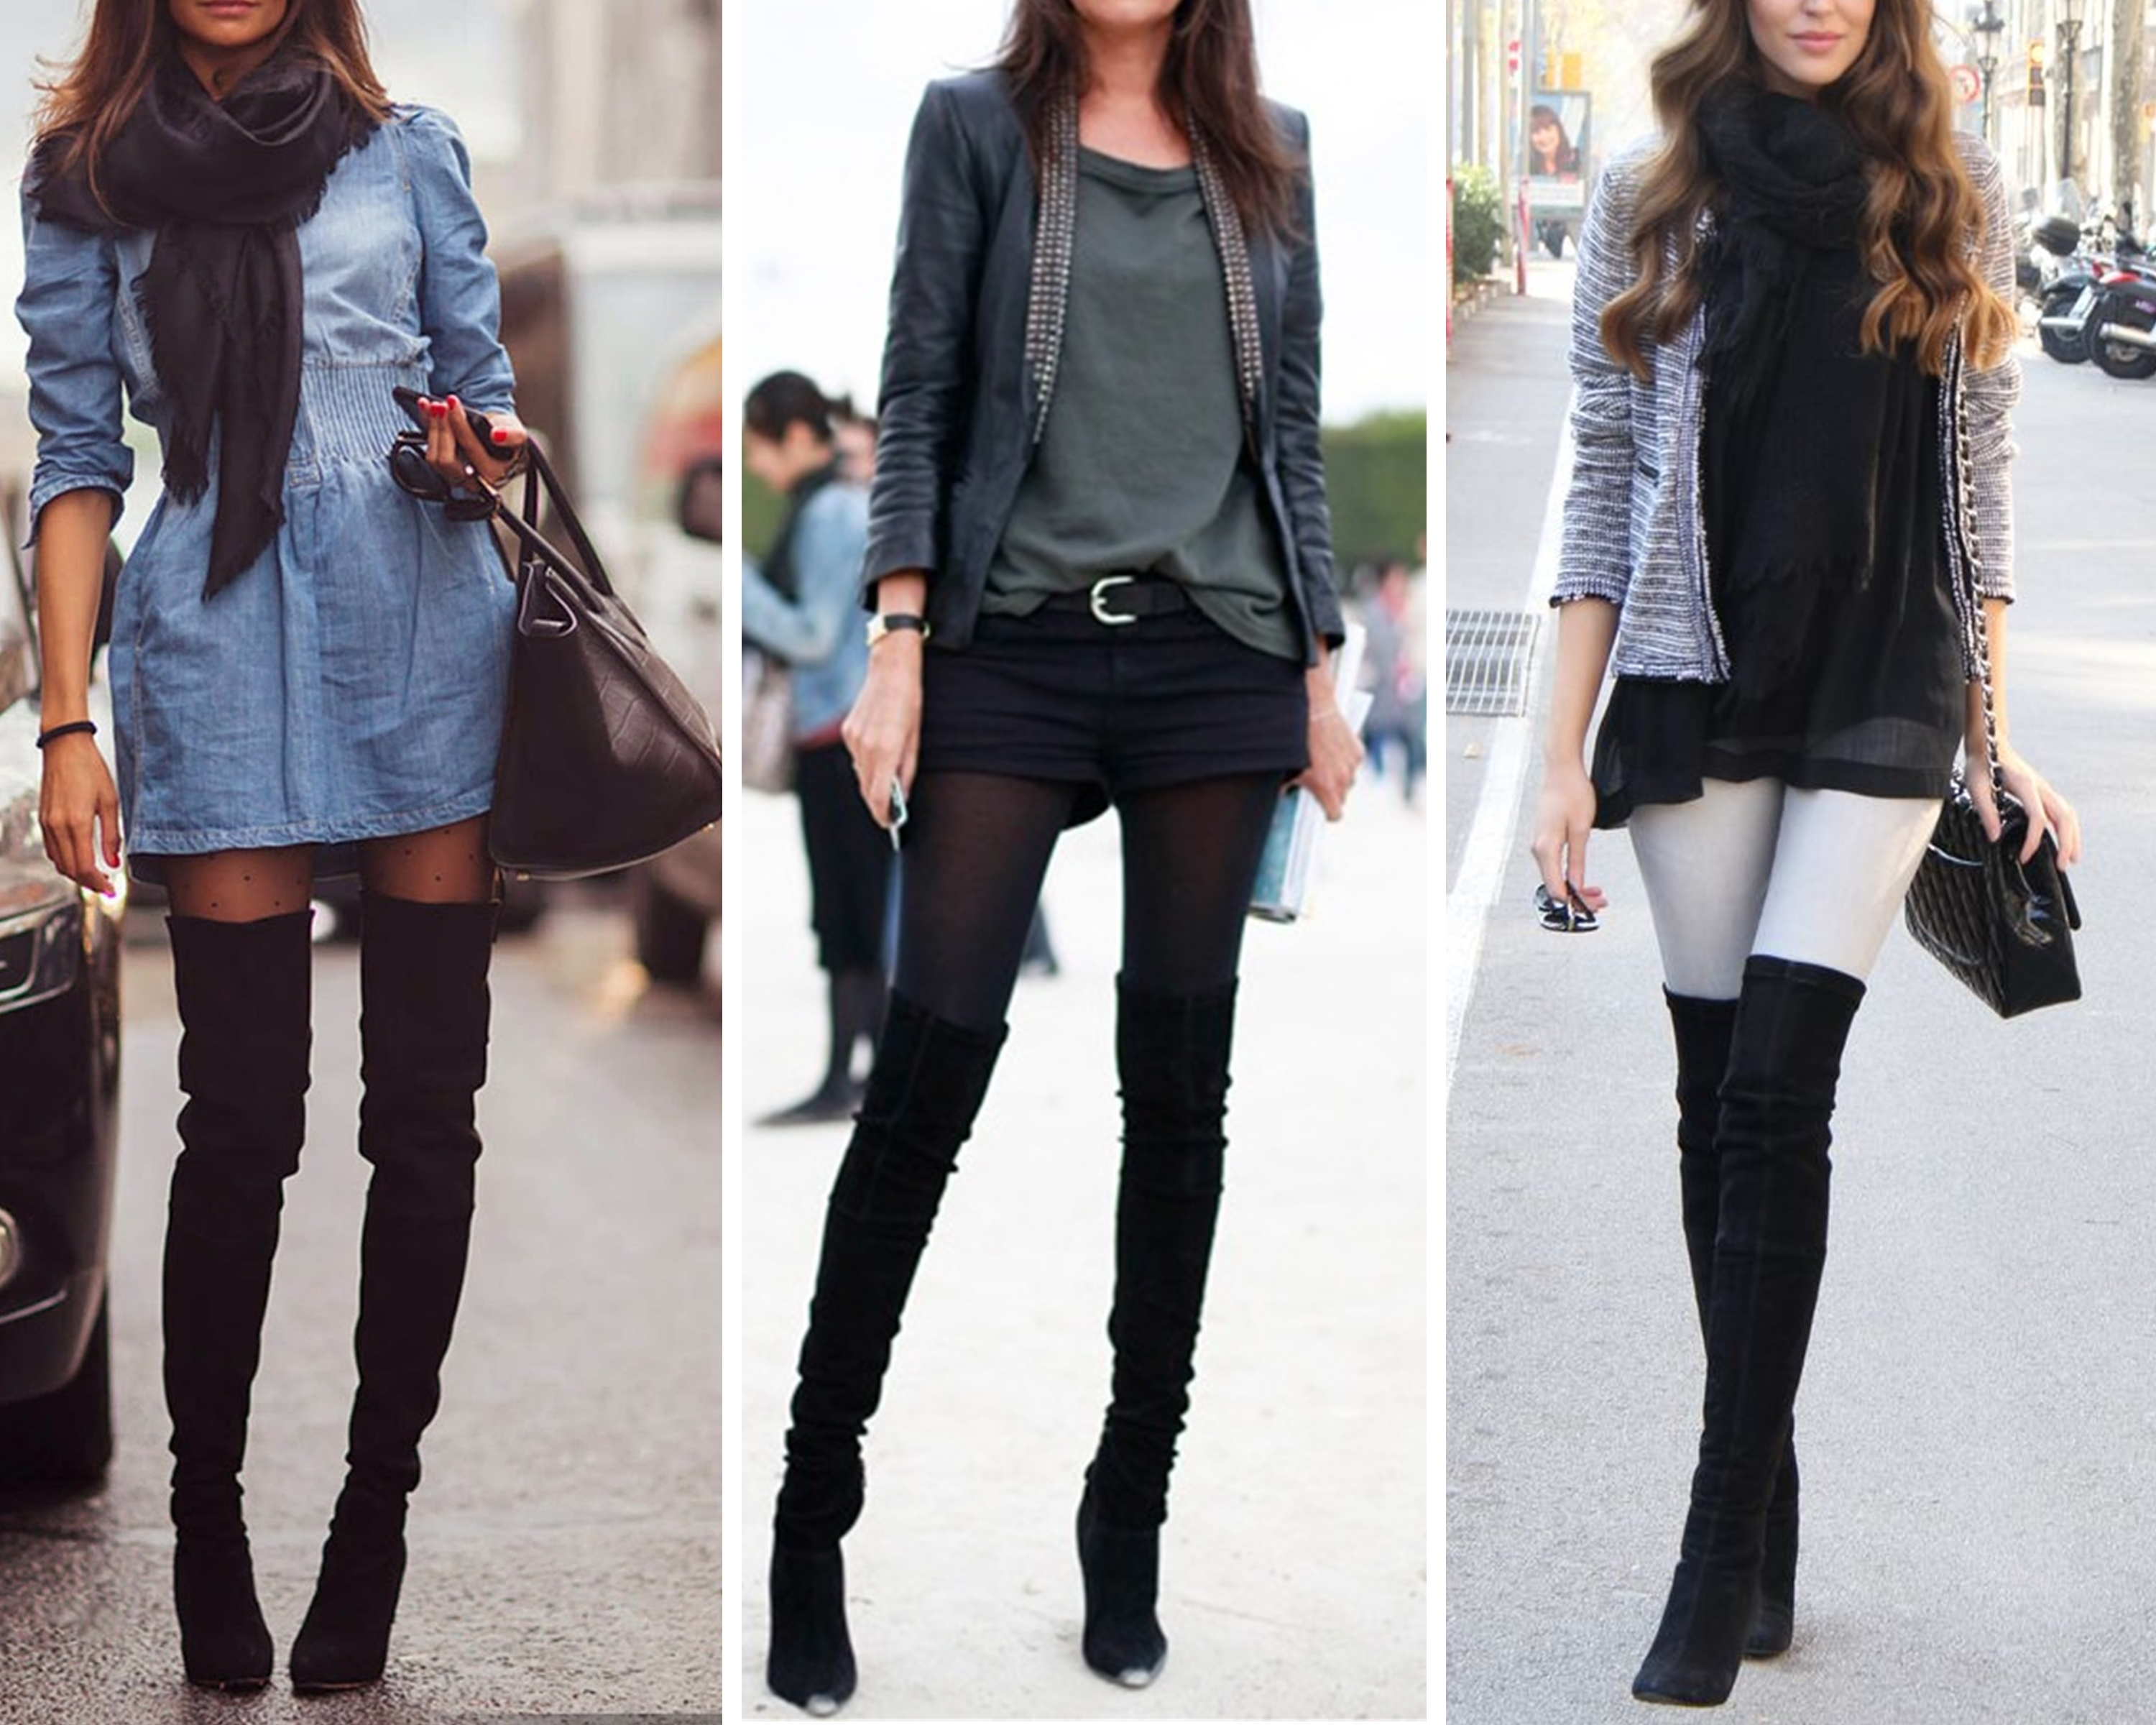 See 5 Ways to Wear Over the Knee Boots